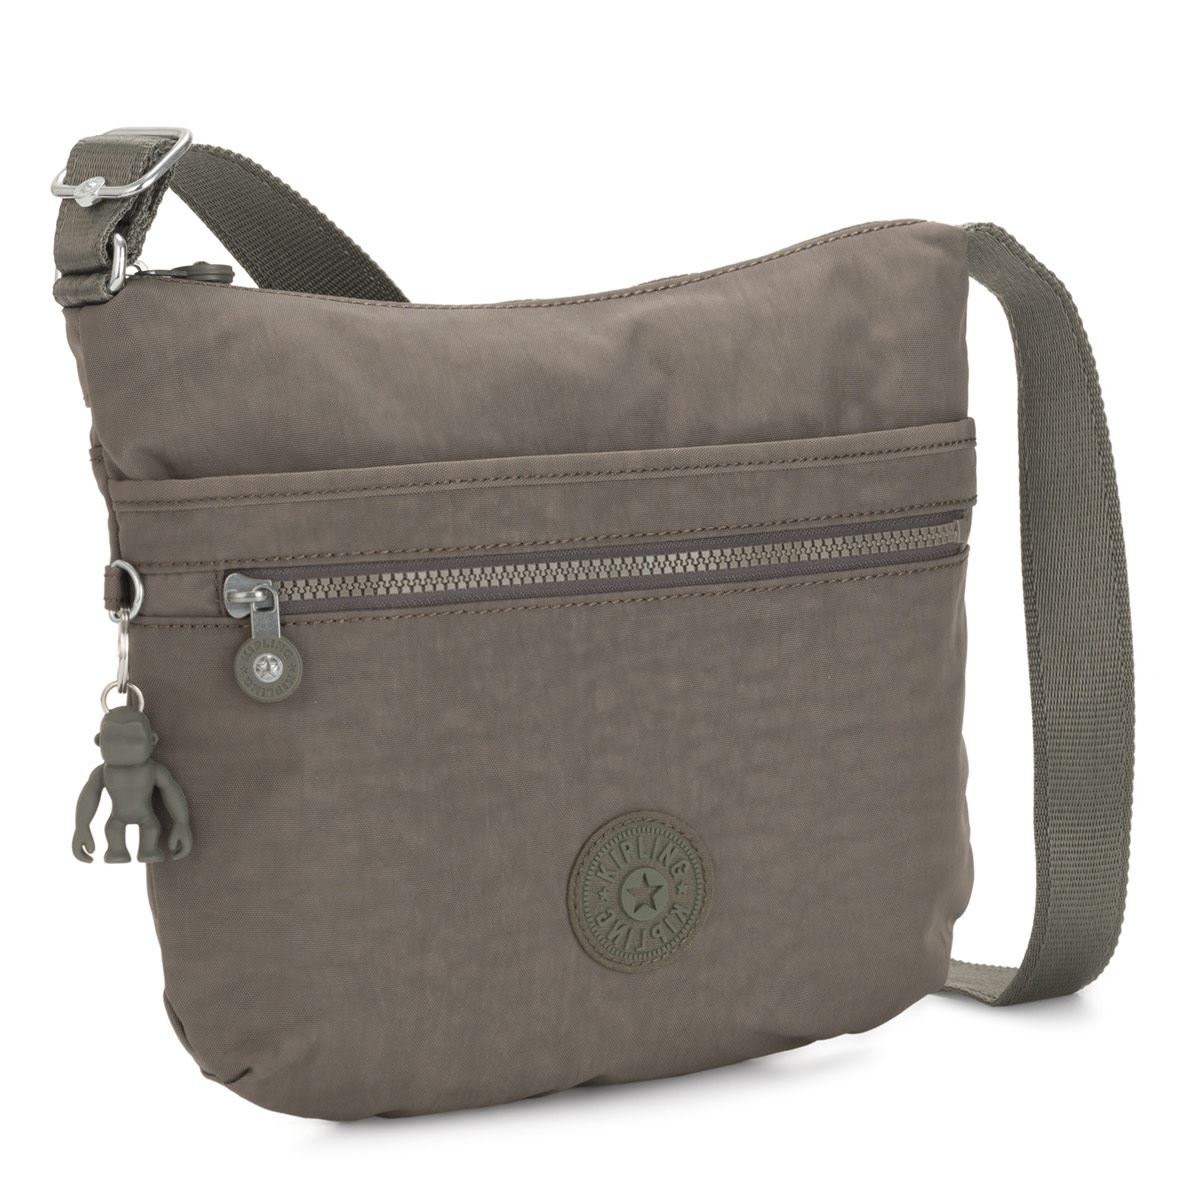 Bolso Cross Body Café Kipling